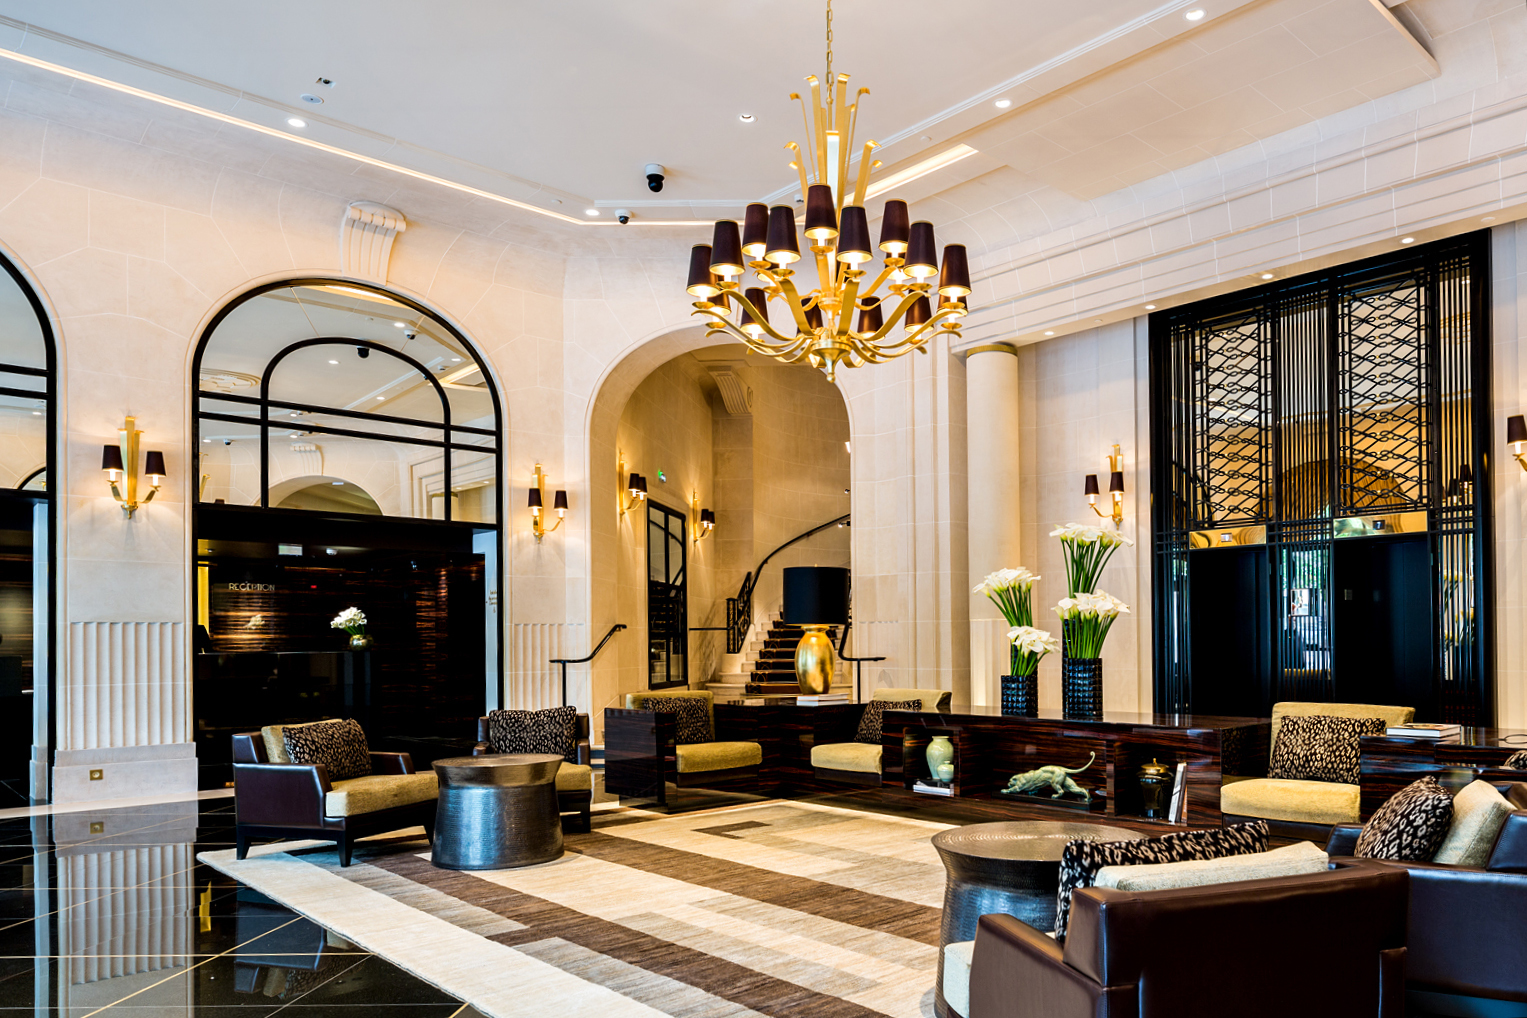 Arts Deco Paris Starwood Hotels Resorts Reopens An Art Deco Icon Prince De